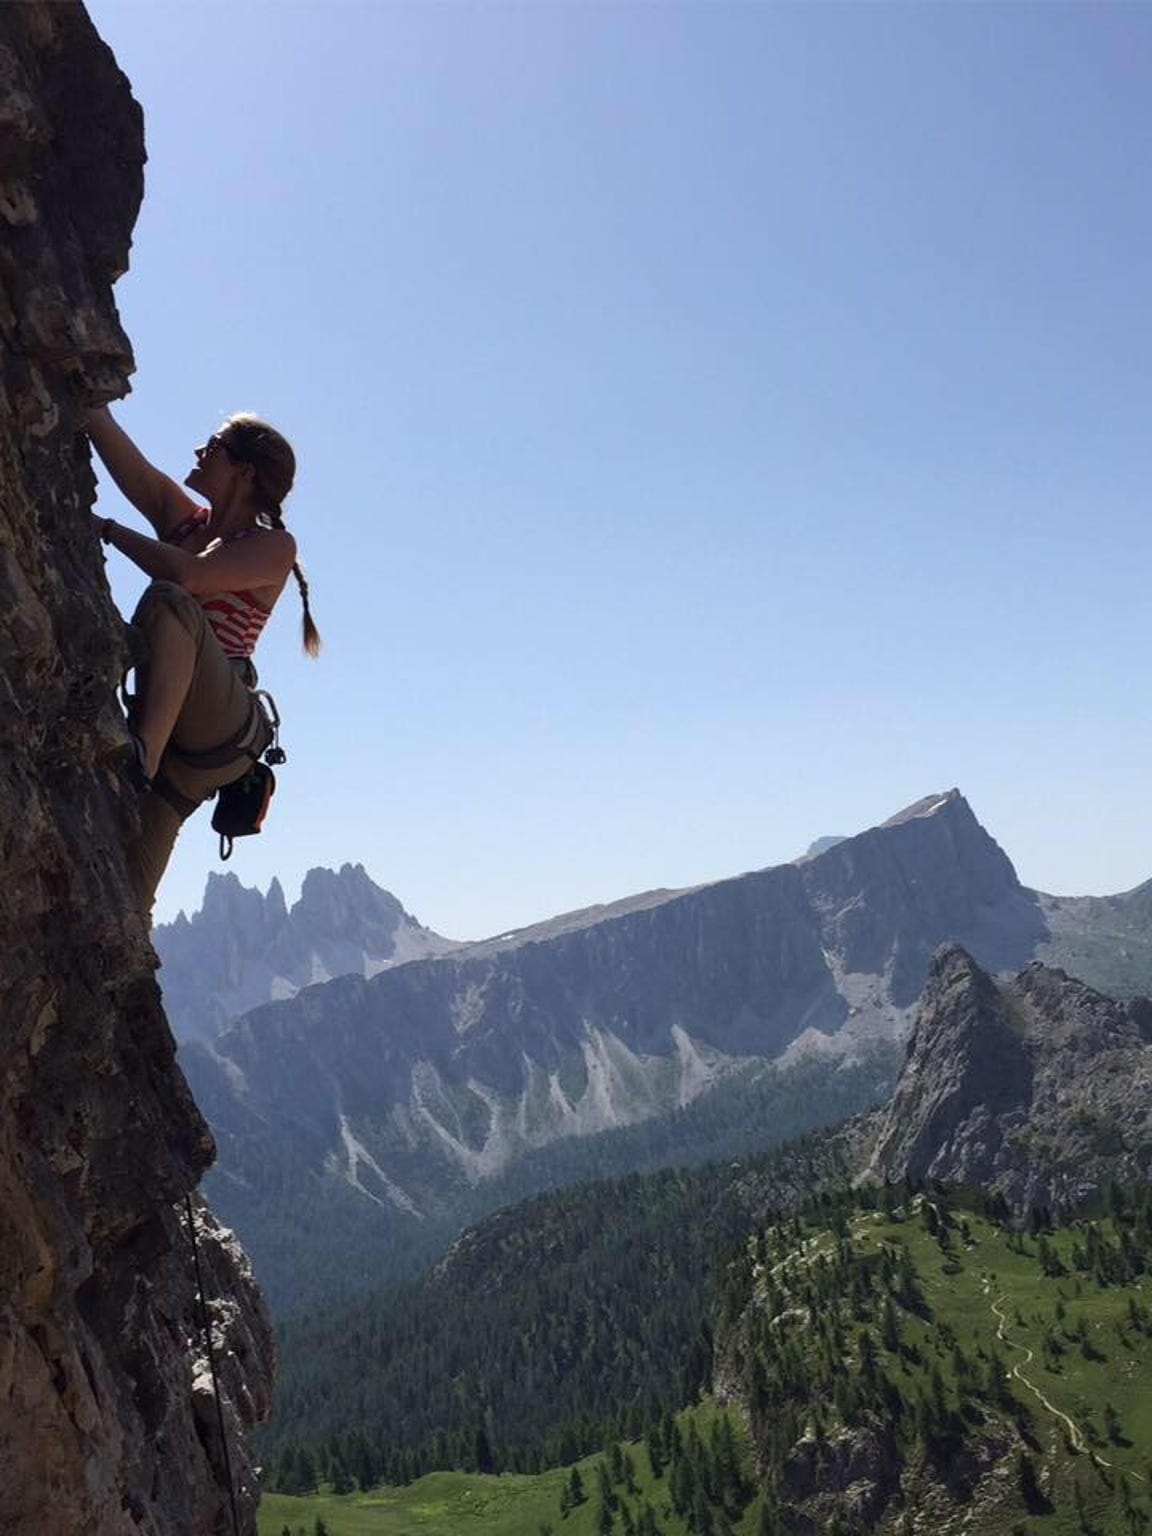 April Kirby sends a route in the Dolomites of Northern